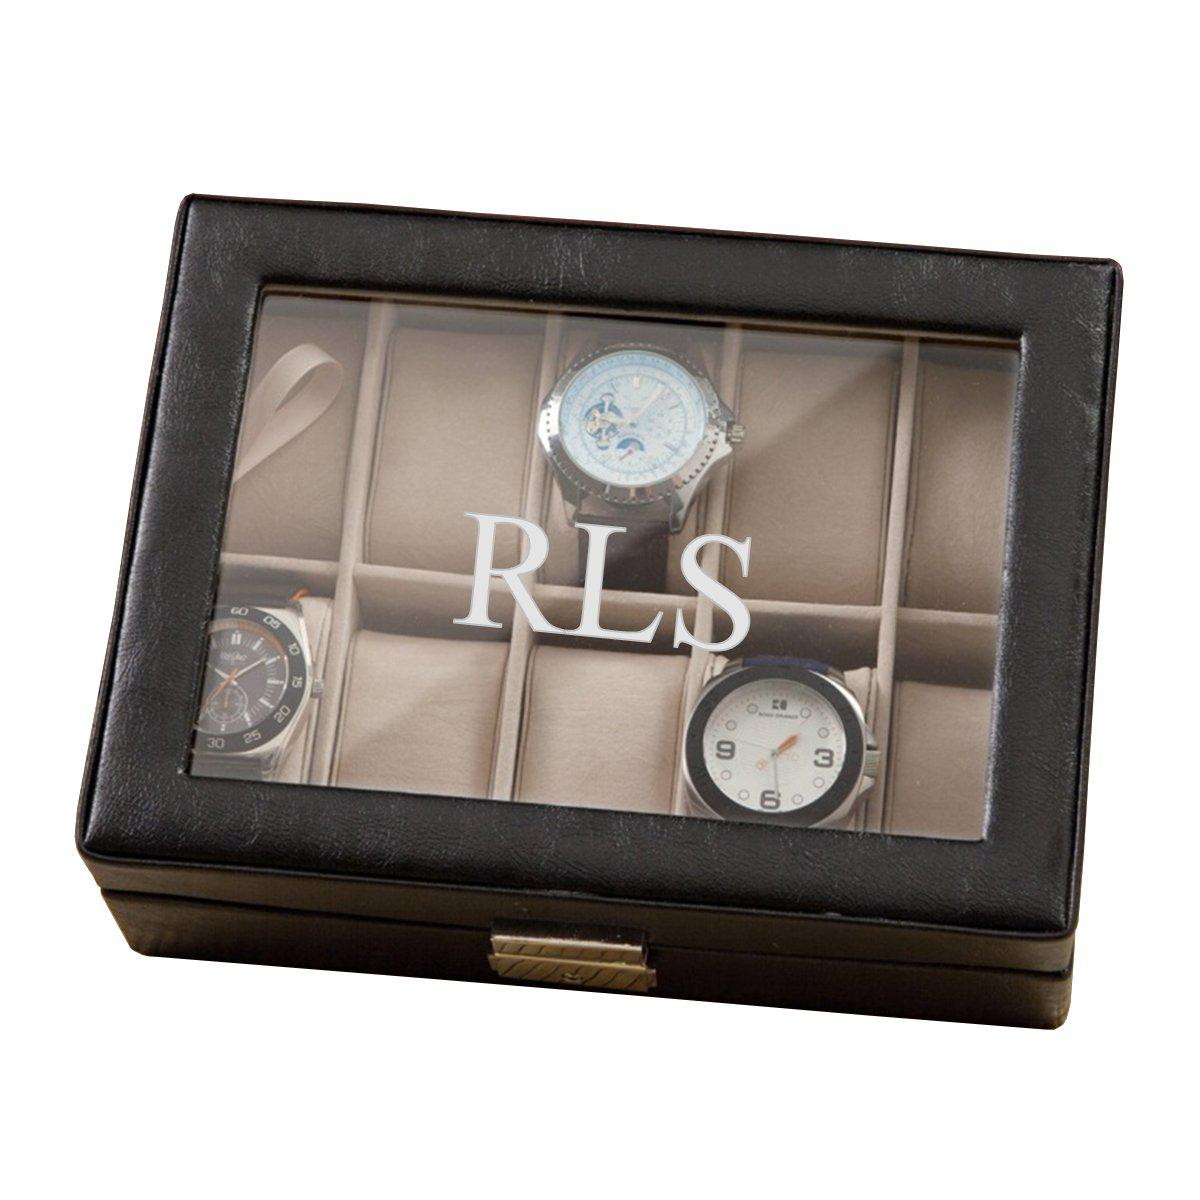 Personalized-Watch-Box-Leather-Black-Monogrammed